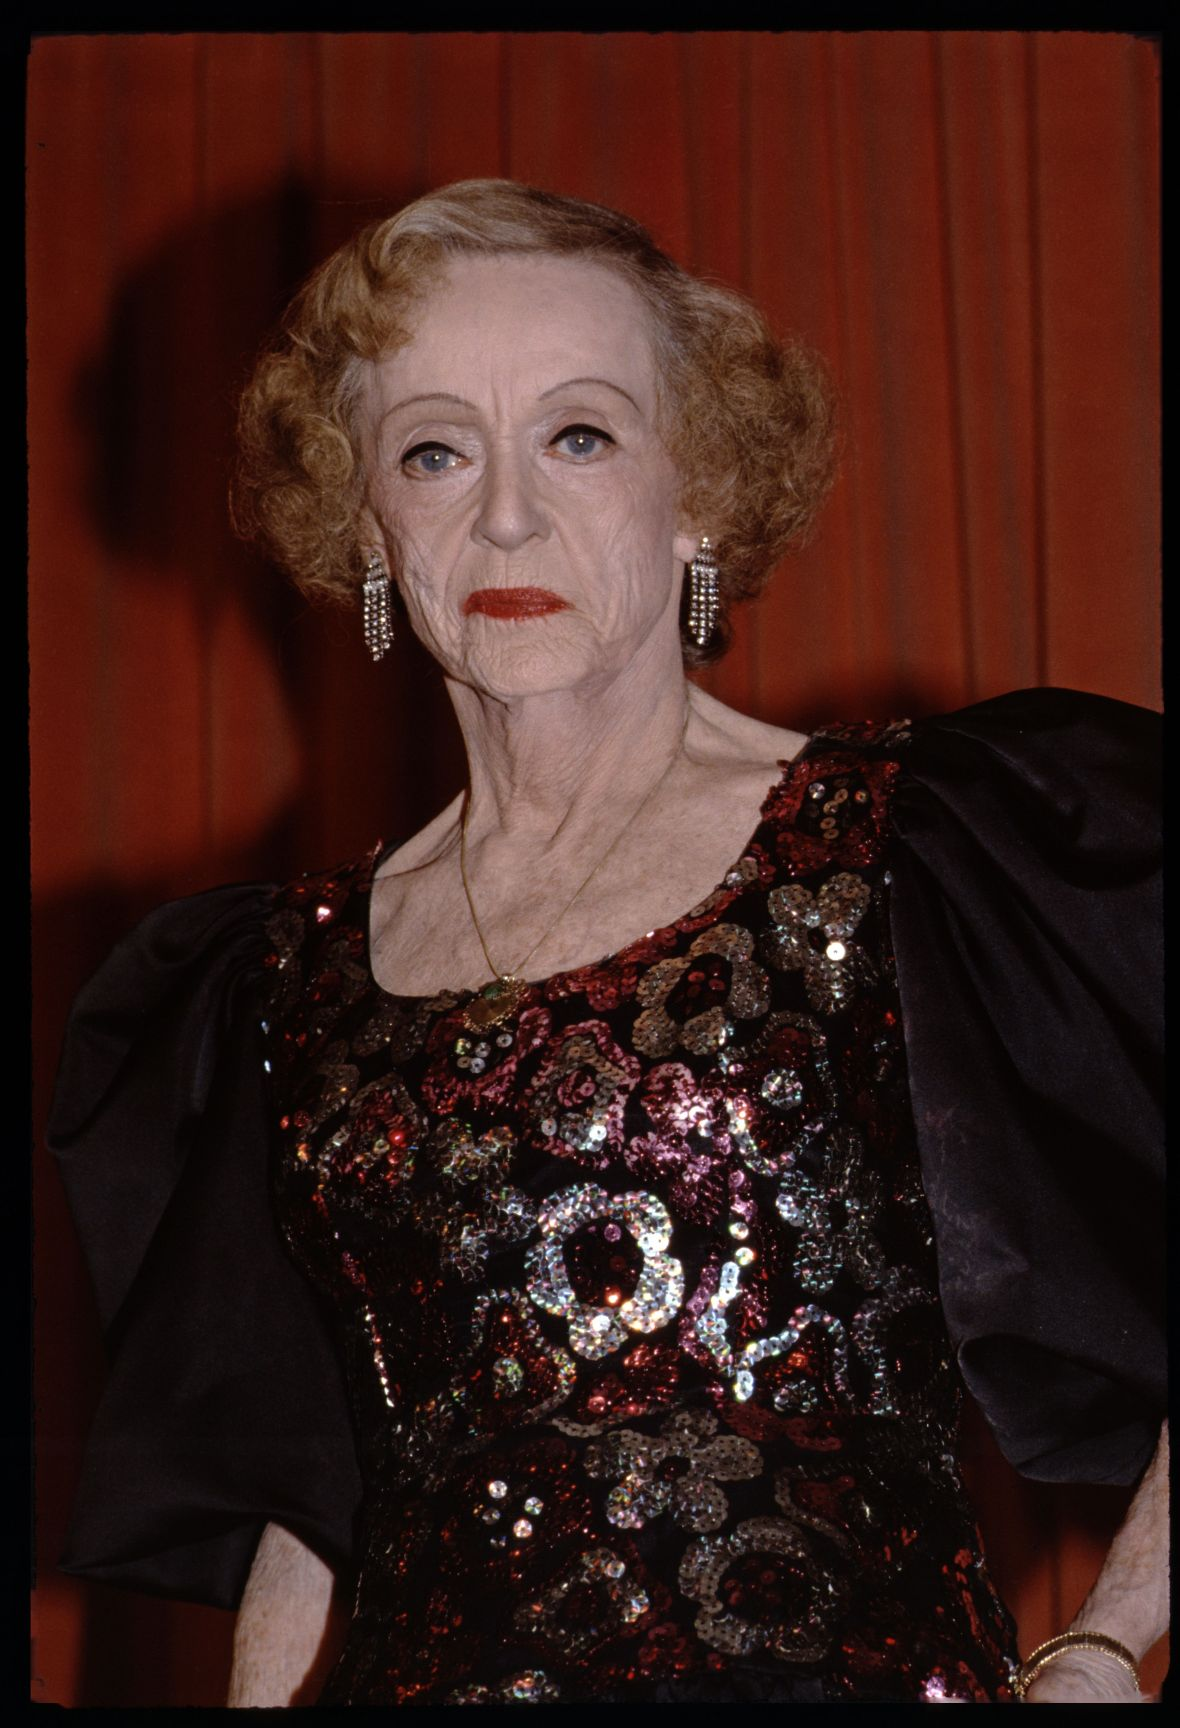 Bette Davis at the 1986 Golden Globes